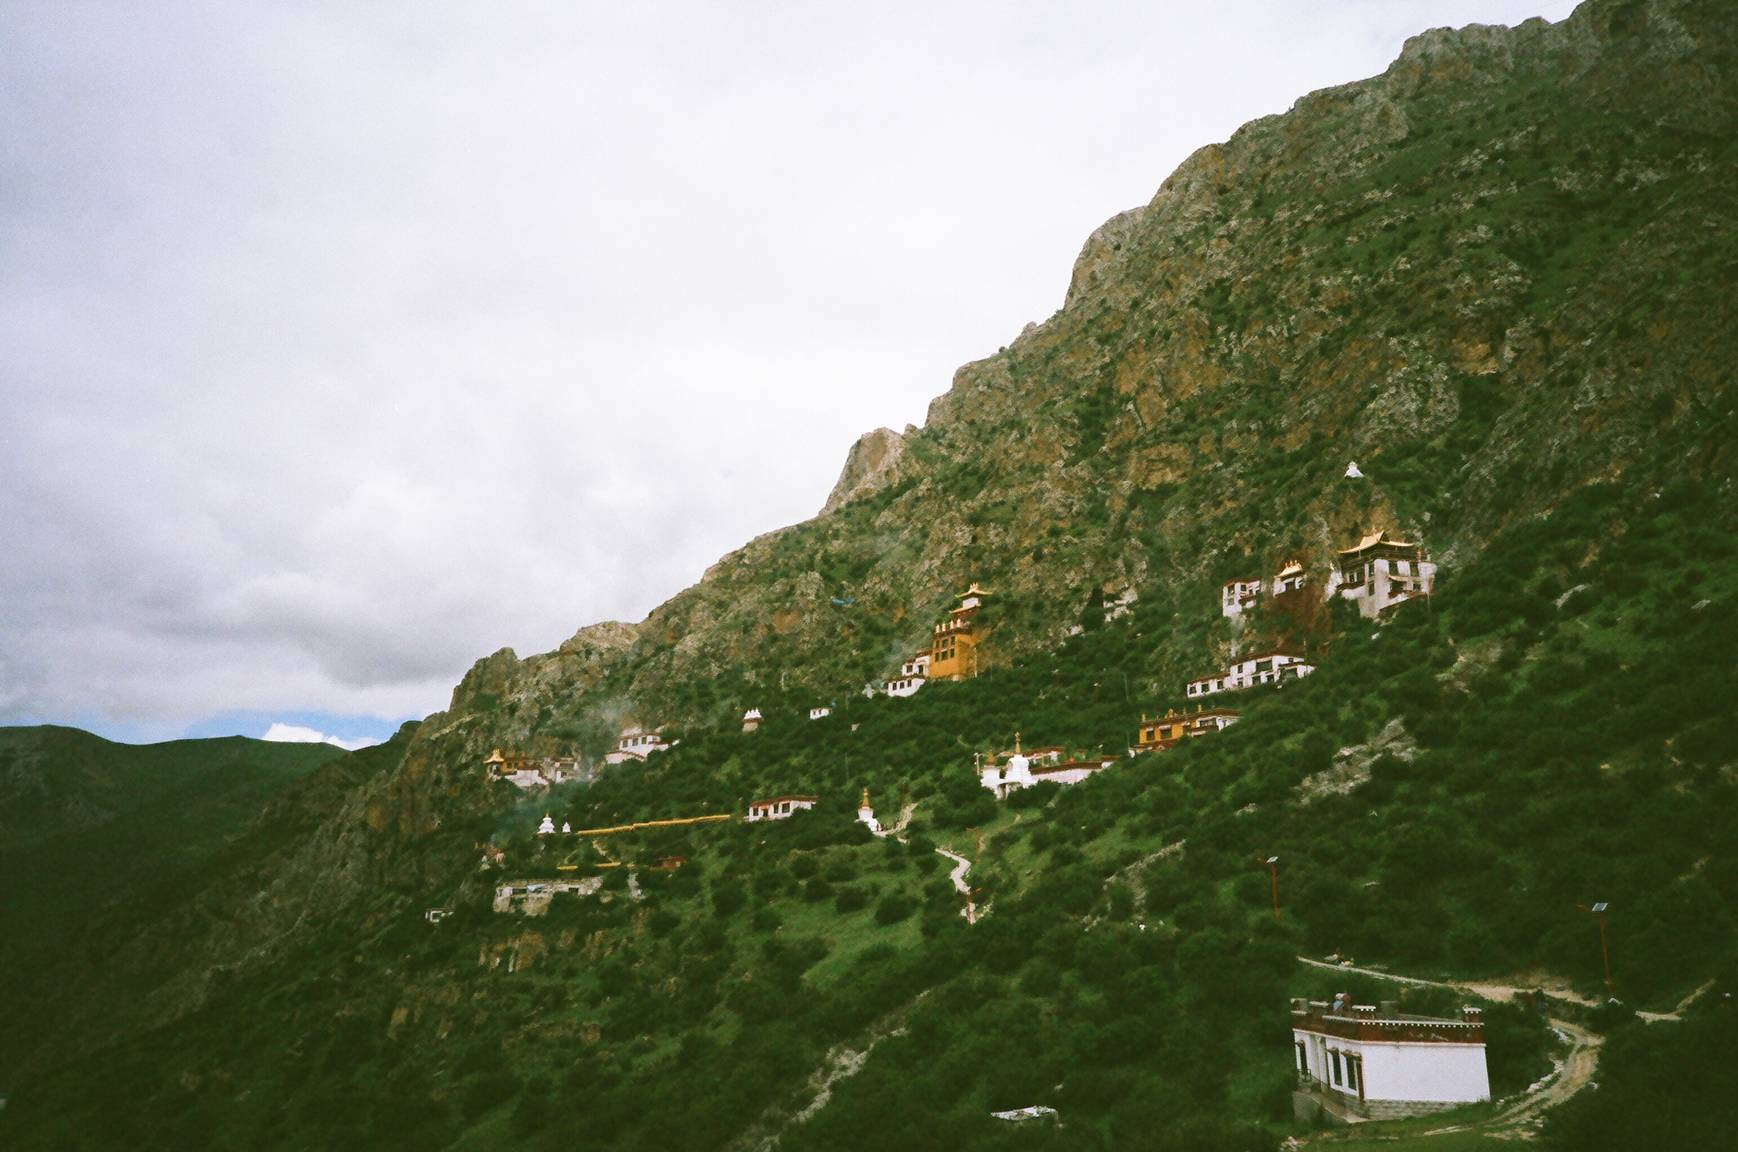 Small village on the slope of a Hill.